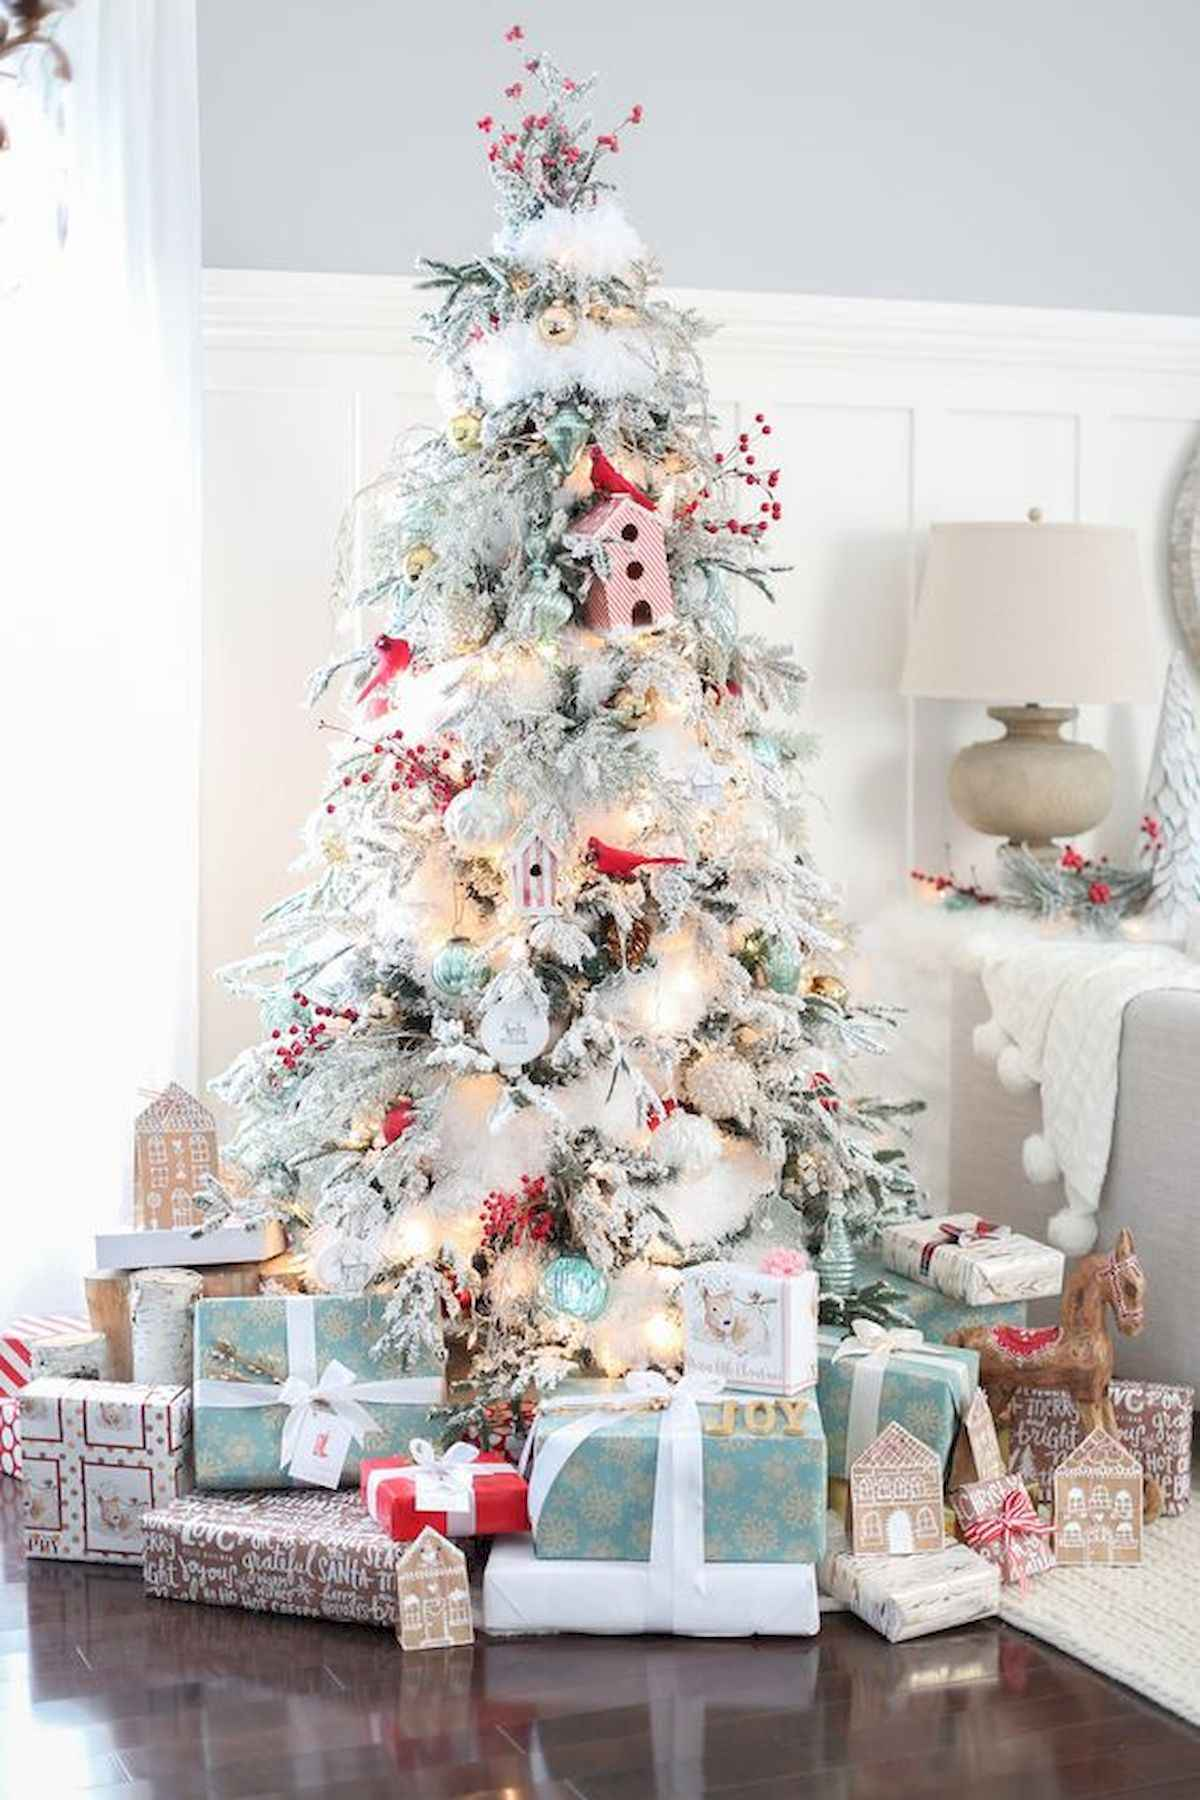 60 awesome christmas tree decorations ideas (41)